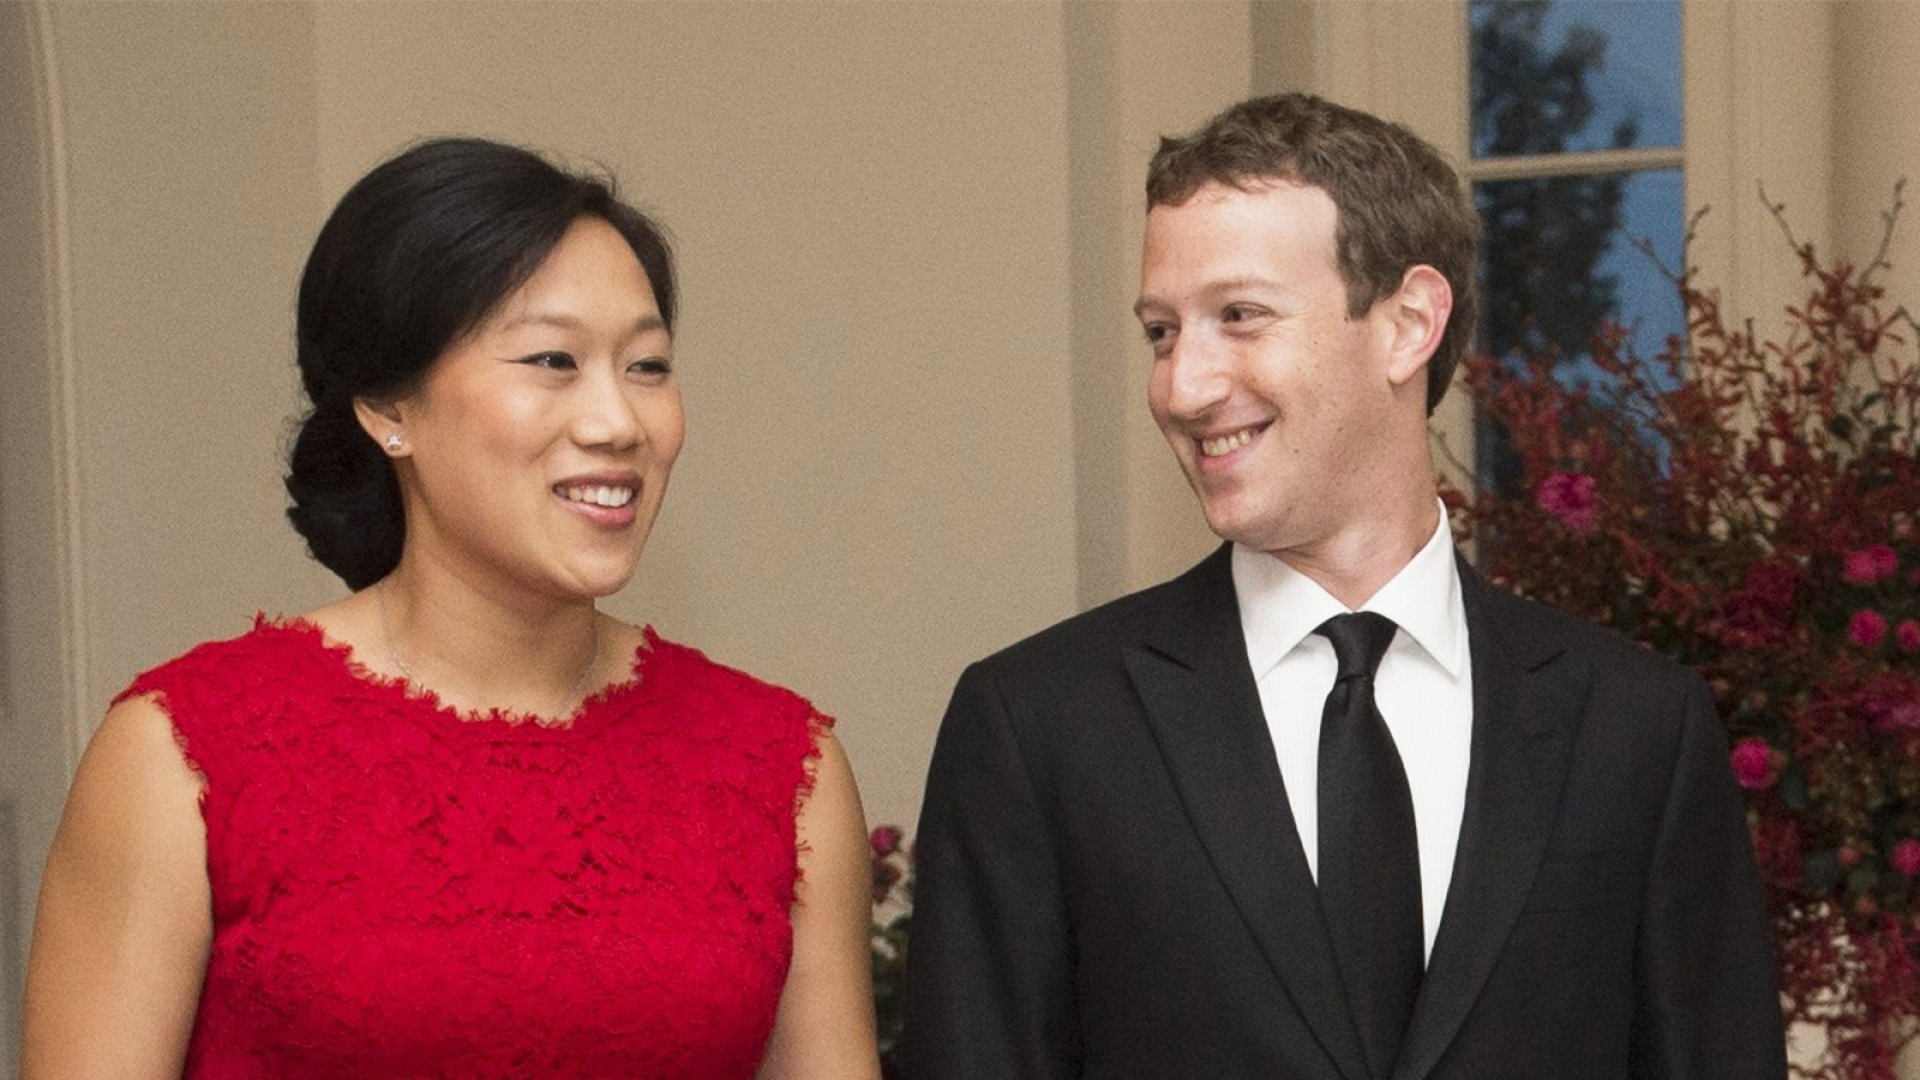 Priscilla Chan and Mark Zuckerberg.